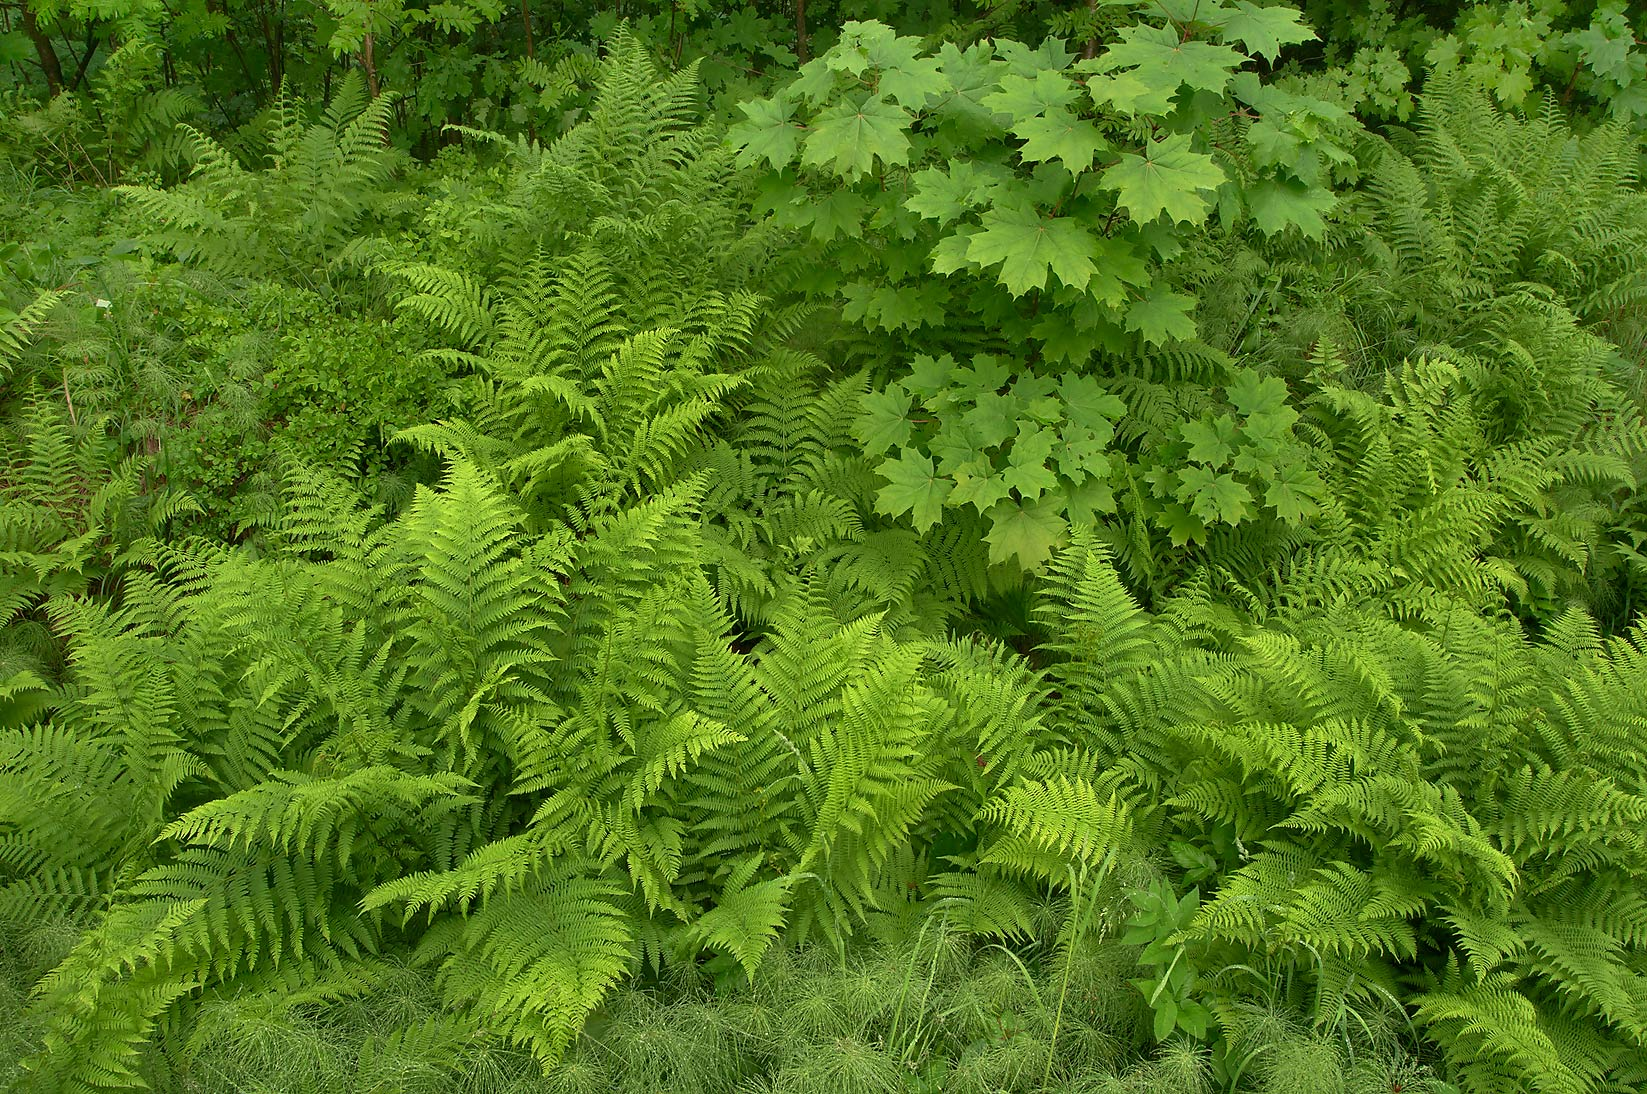 Greenery in Pavlovsk Park. Pavlovsk, a suburb of St.Petersburg, Russia